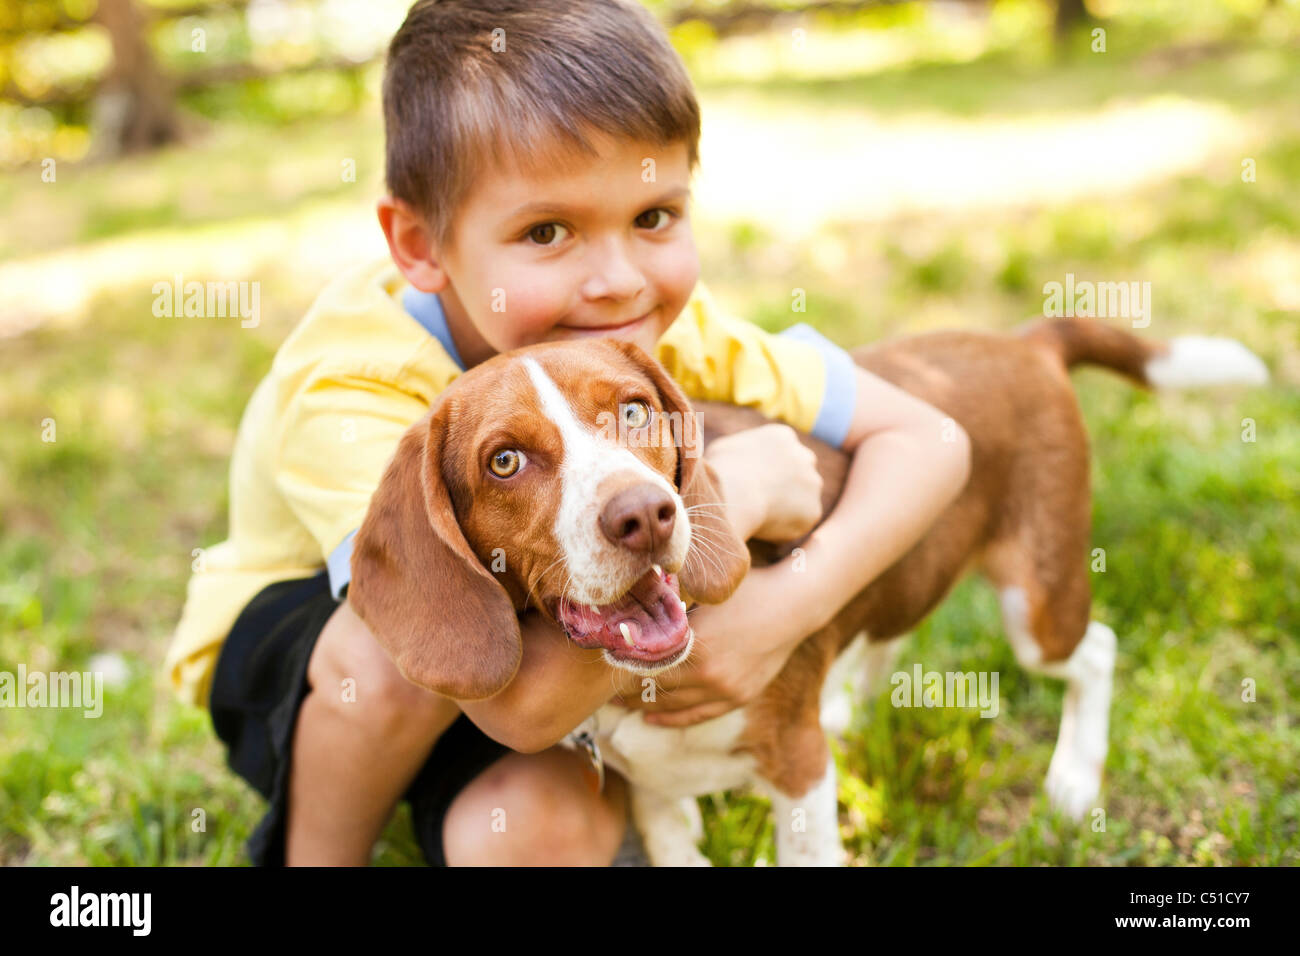 Portrait of Boy with Dog - Stock Image